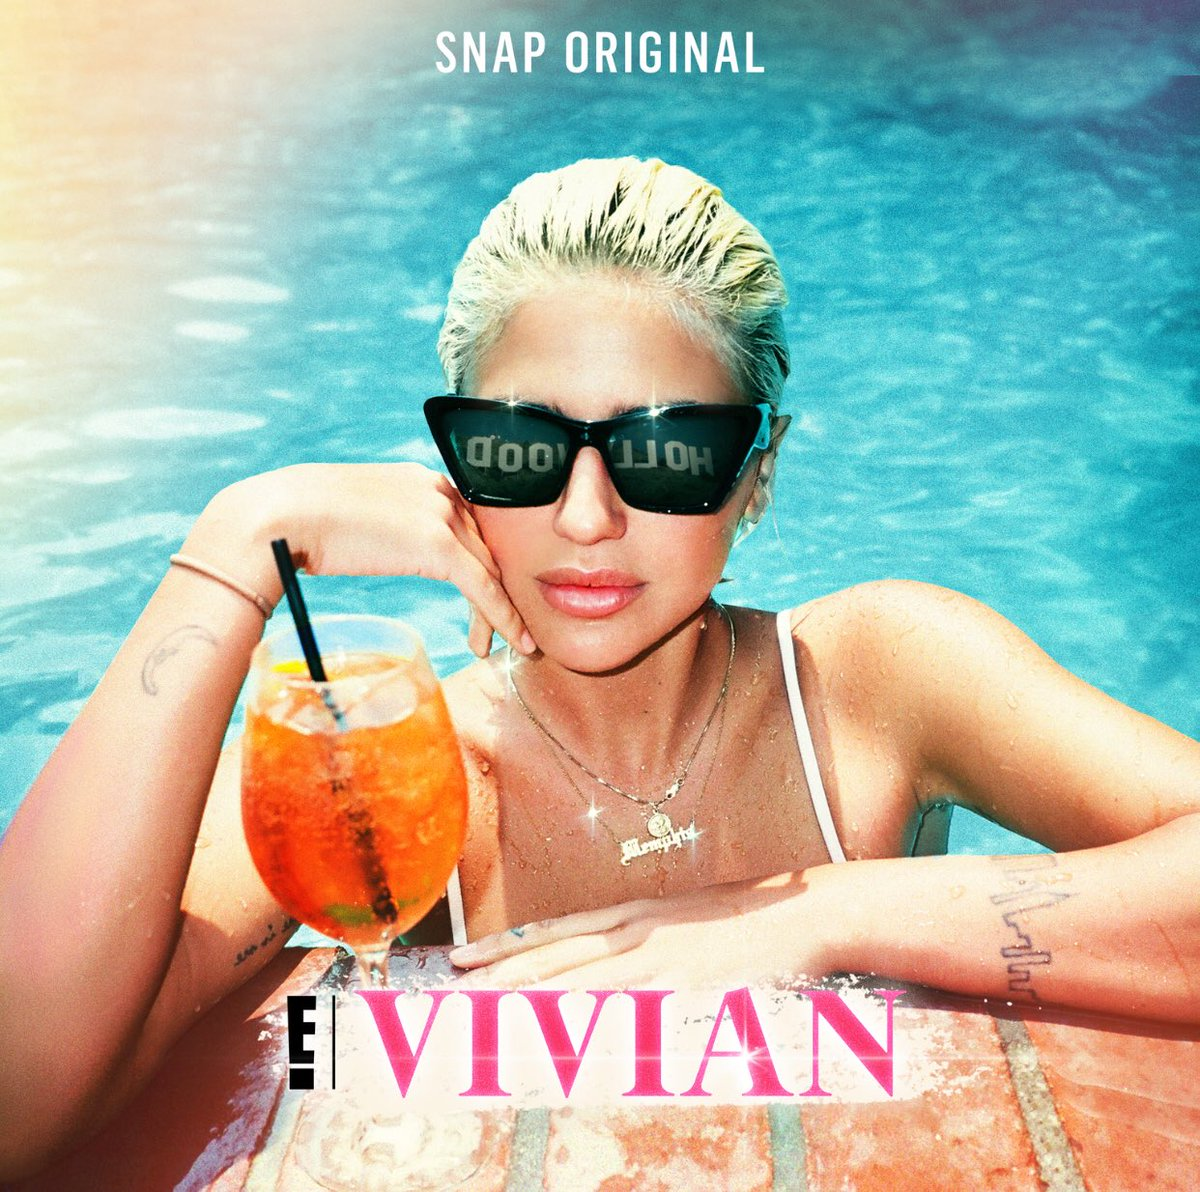 Have you watched Vivian on Snapchat Discover yet? It's pretty amazing, check it out!